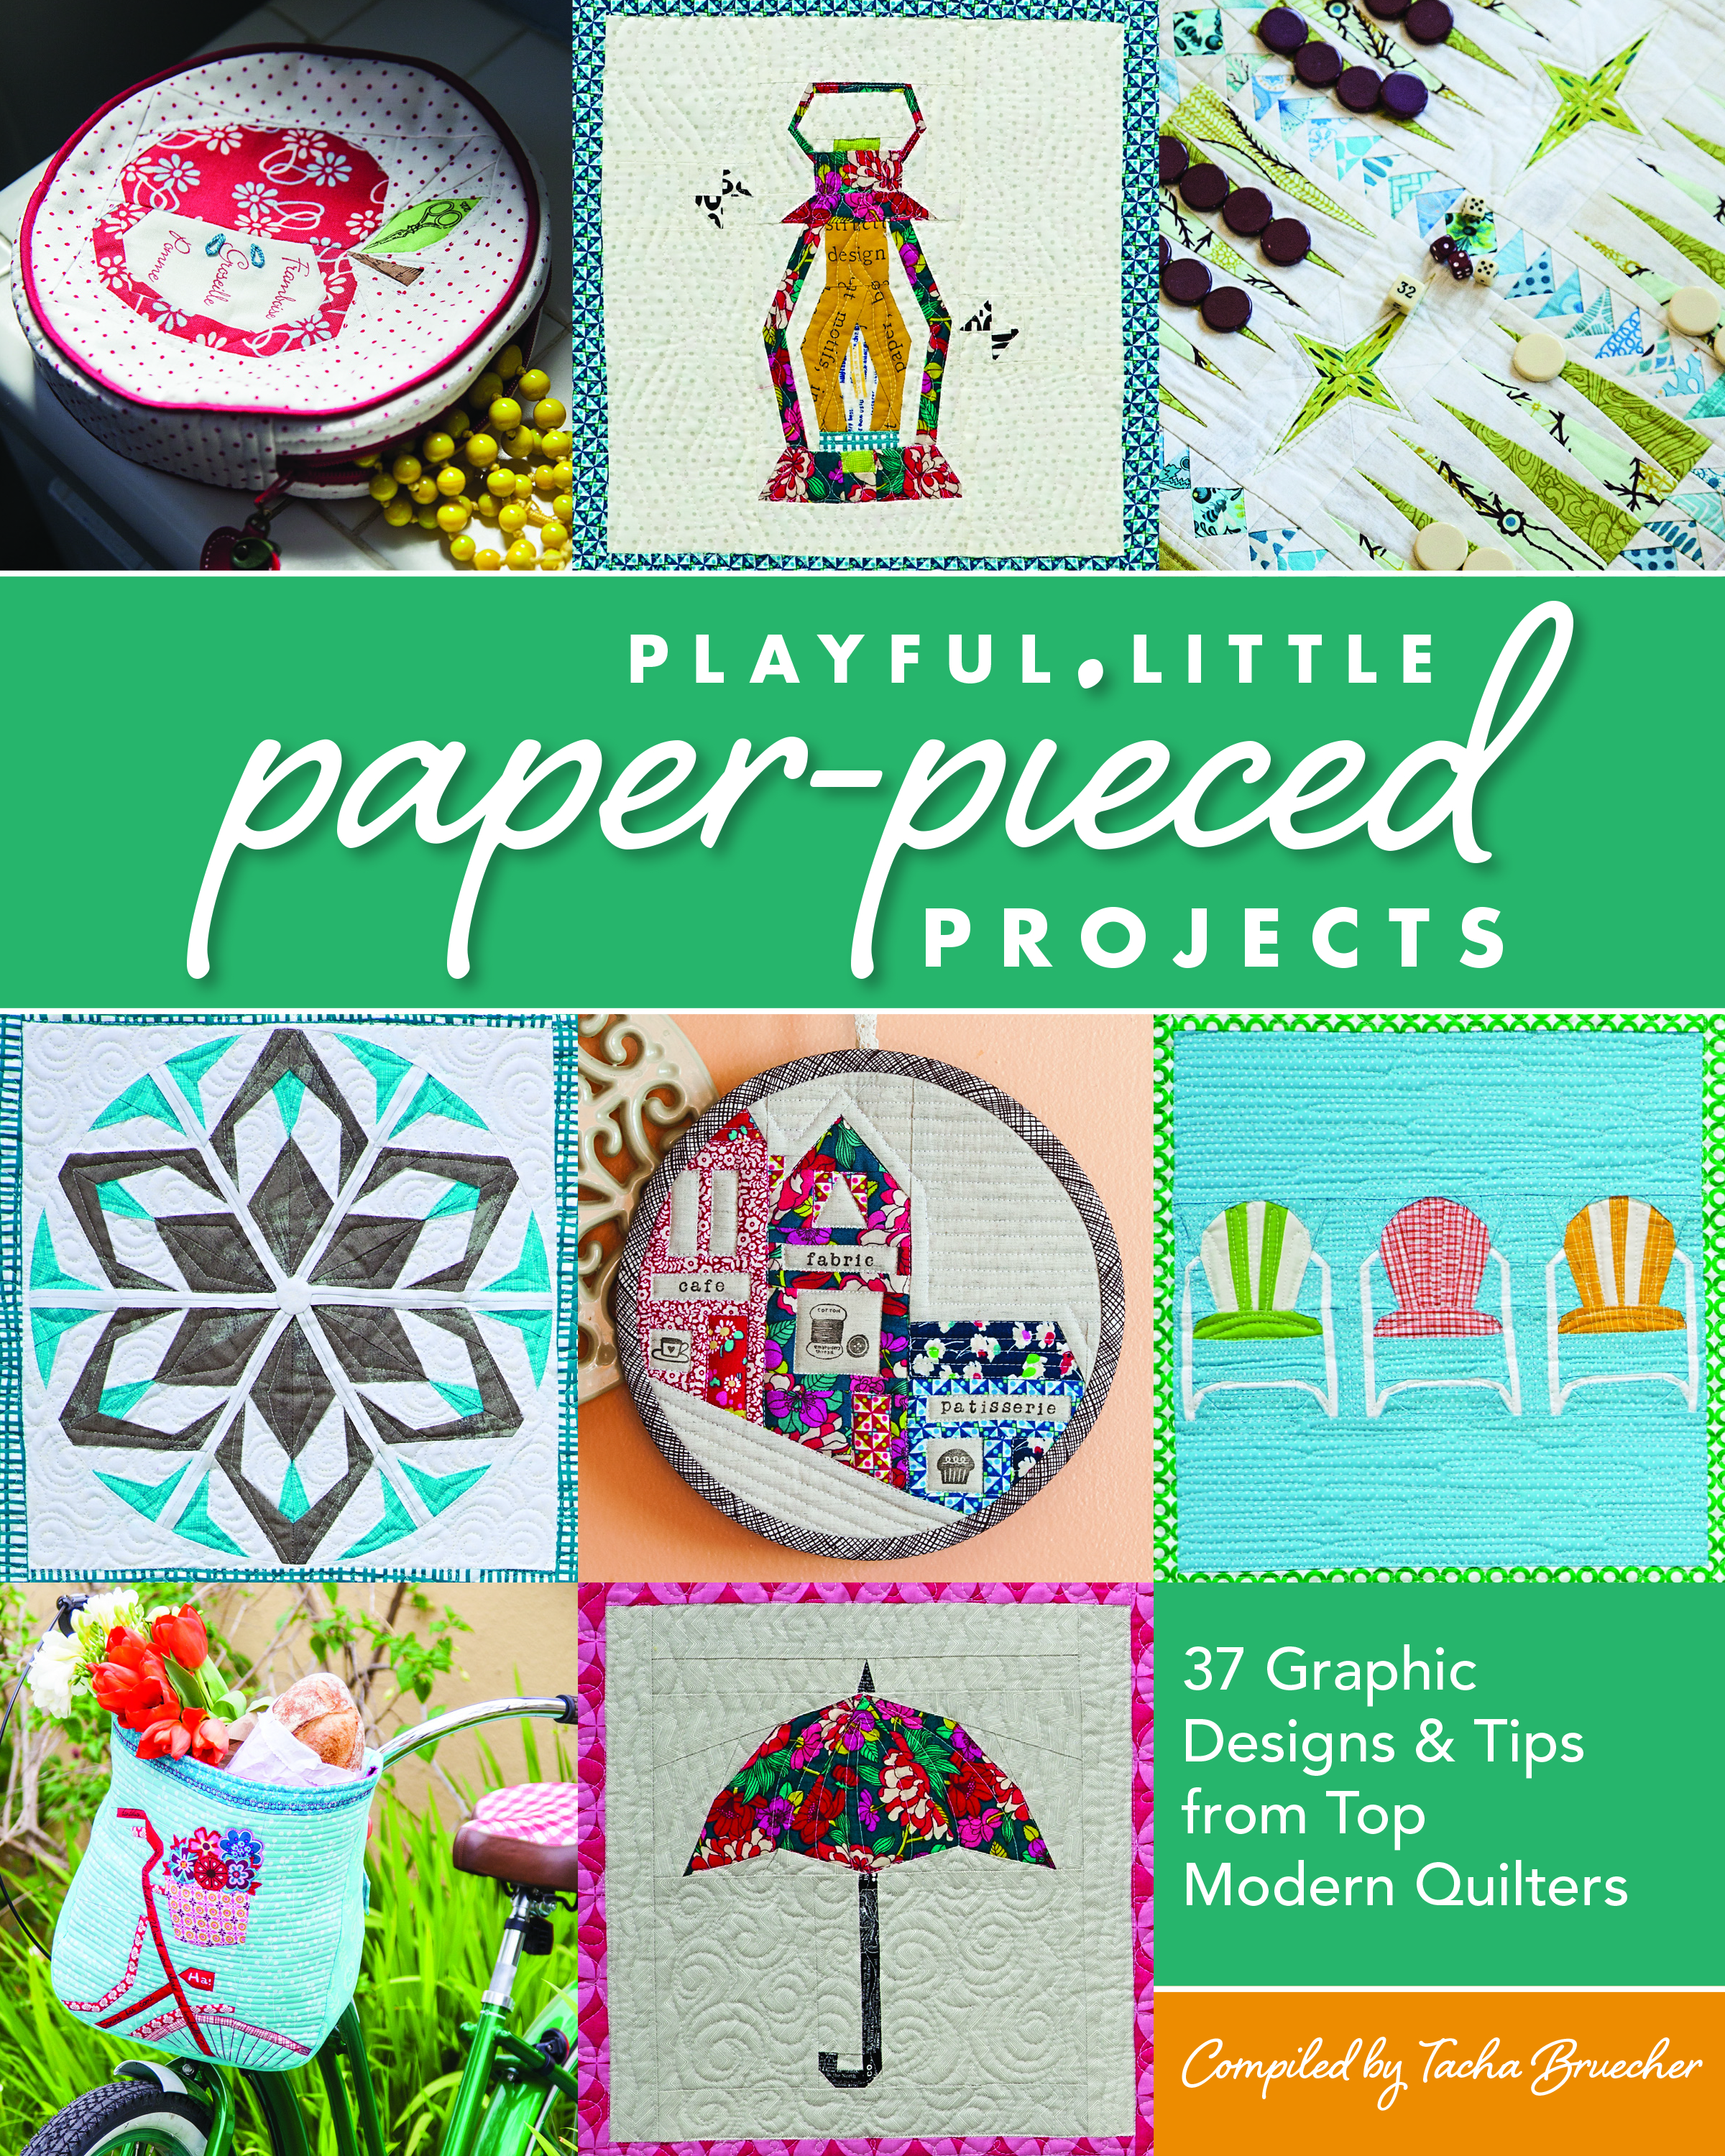 Paper piecing is a technique that can frighten off many quilters, but there is no reason for that. Tascha Breucher put together a strong book that demystifies the technique and inspires in the wide range of projects. It includes a calendar project sure to delight. A sweeping rainbow block incorporated into an art portfolio in my contribution to the book.  Ask for  Playful Little Paper Pieced Projects  in your local quilt shop or pick it  online .